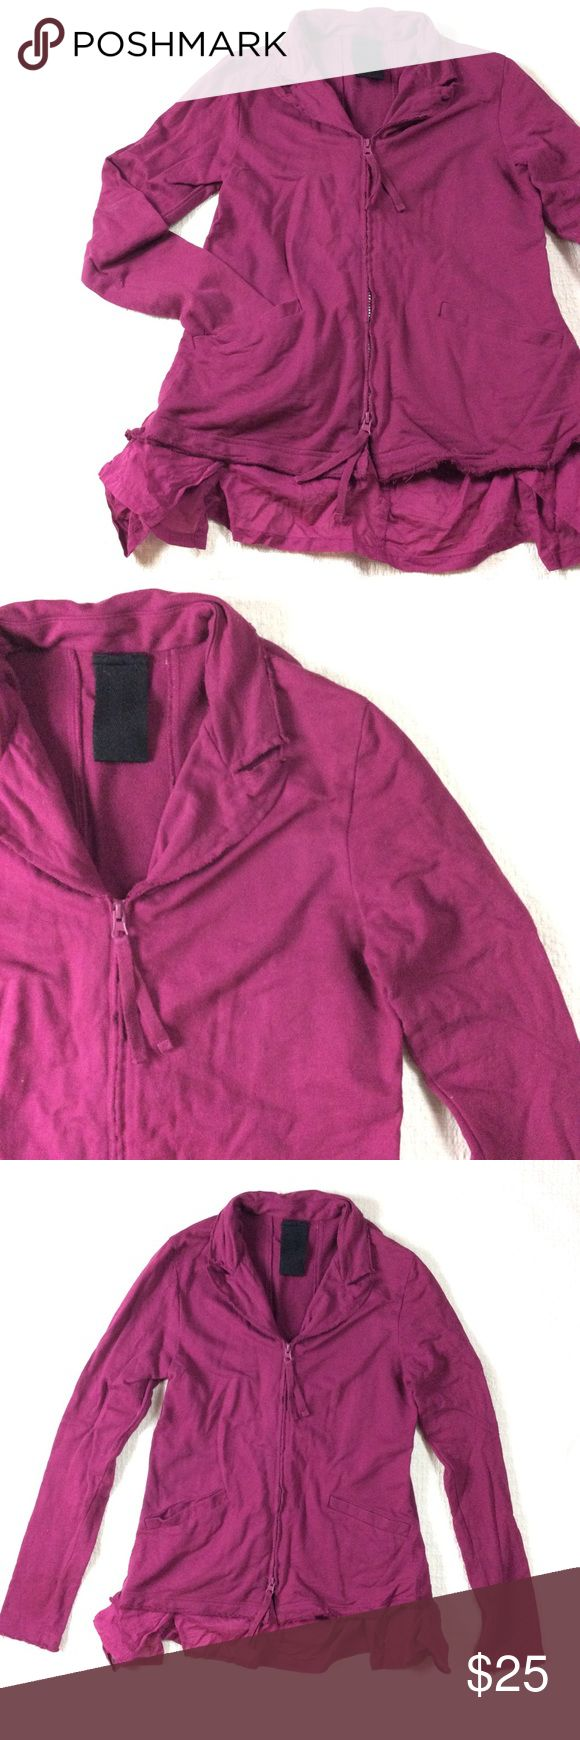 🆕LISTING Zip-Up Yoga Jacket Laidback zip-up jacket. Super cute with a bright or neutral pair of workout leggings. Sweatshirt material. Rough edging. Layered hem around back and sides adds extra detail. No size tag, but fits a size Small. In excellent used condition. Tops Sweatshirts & Hoodies